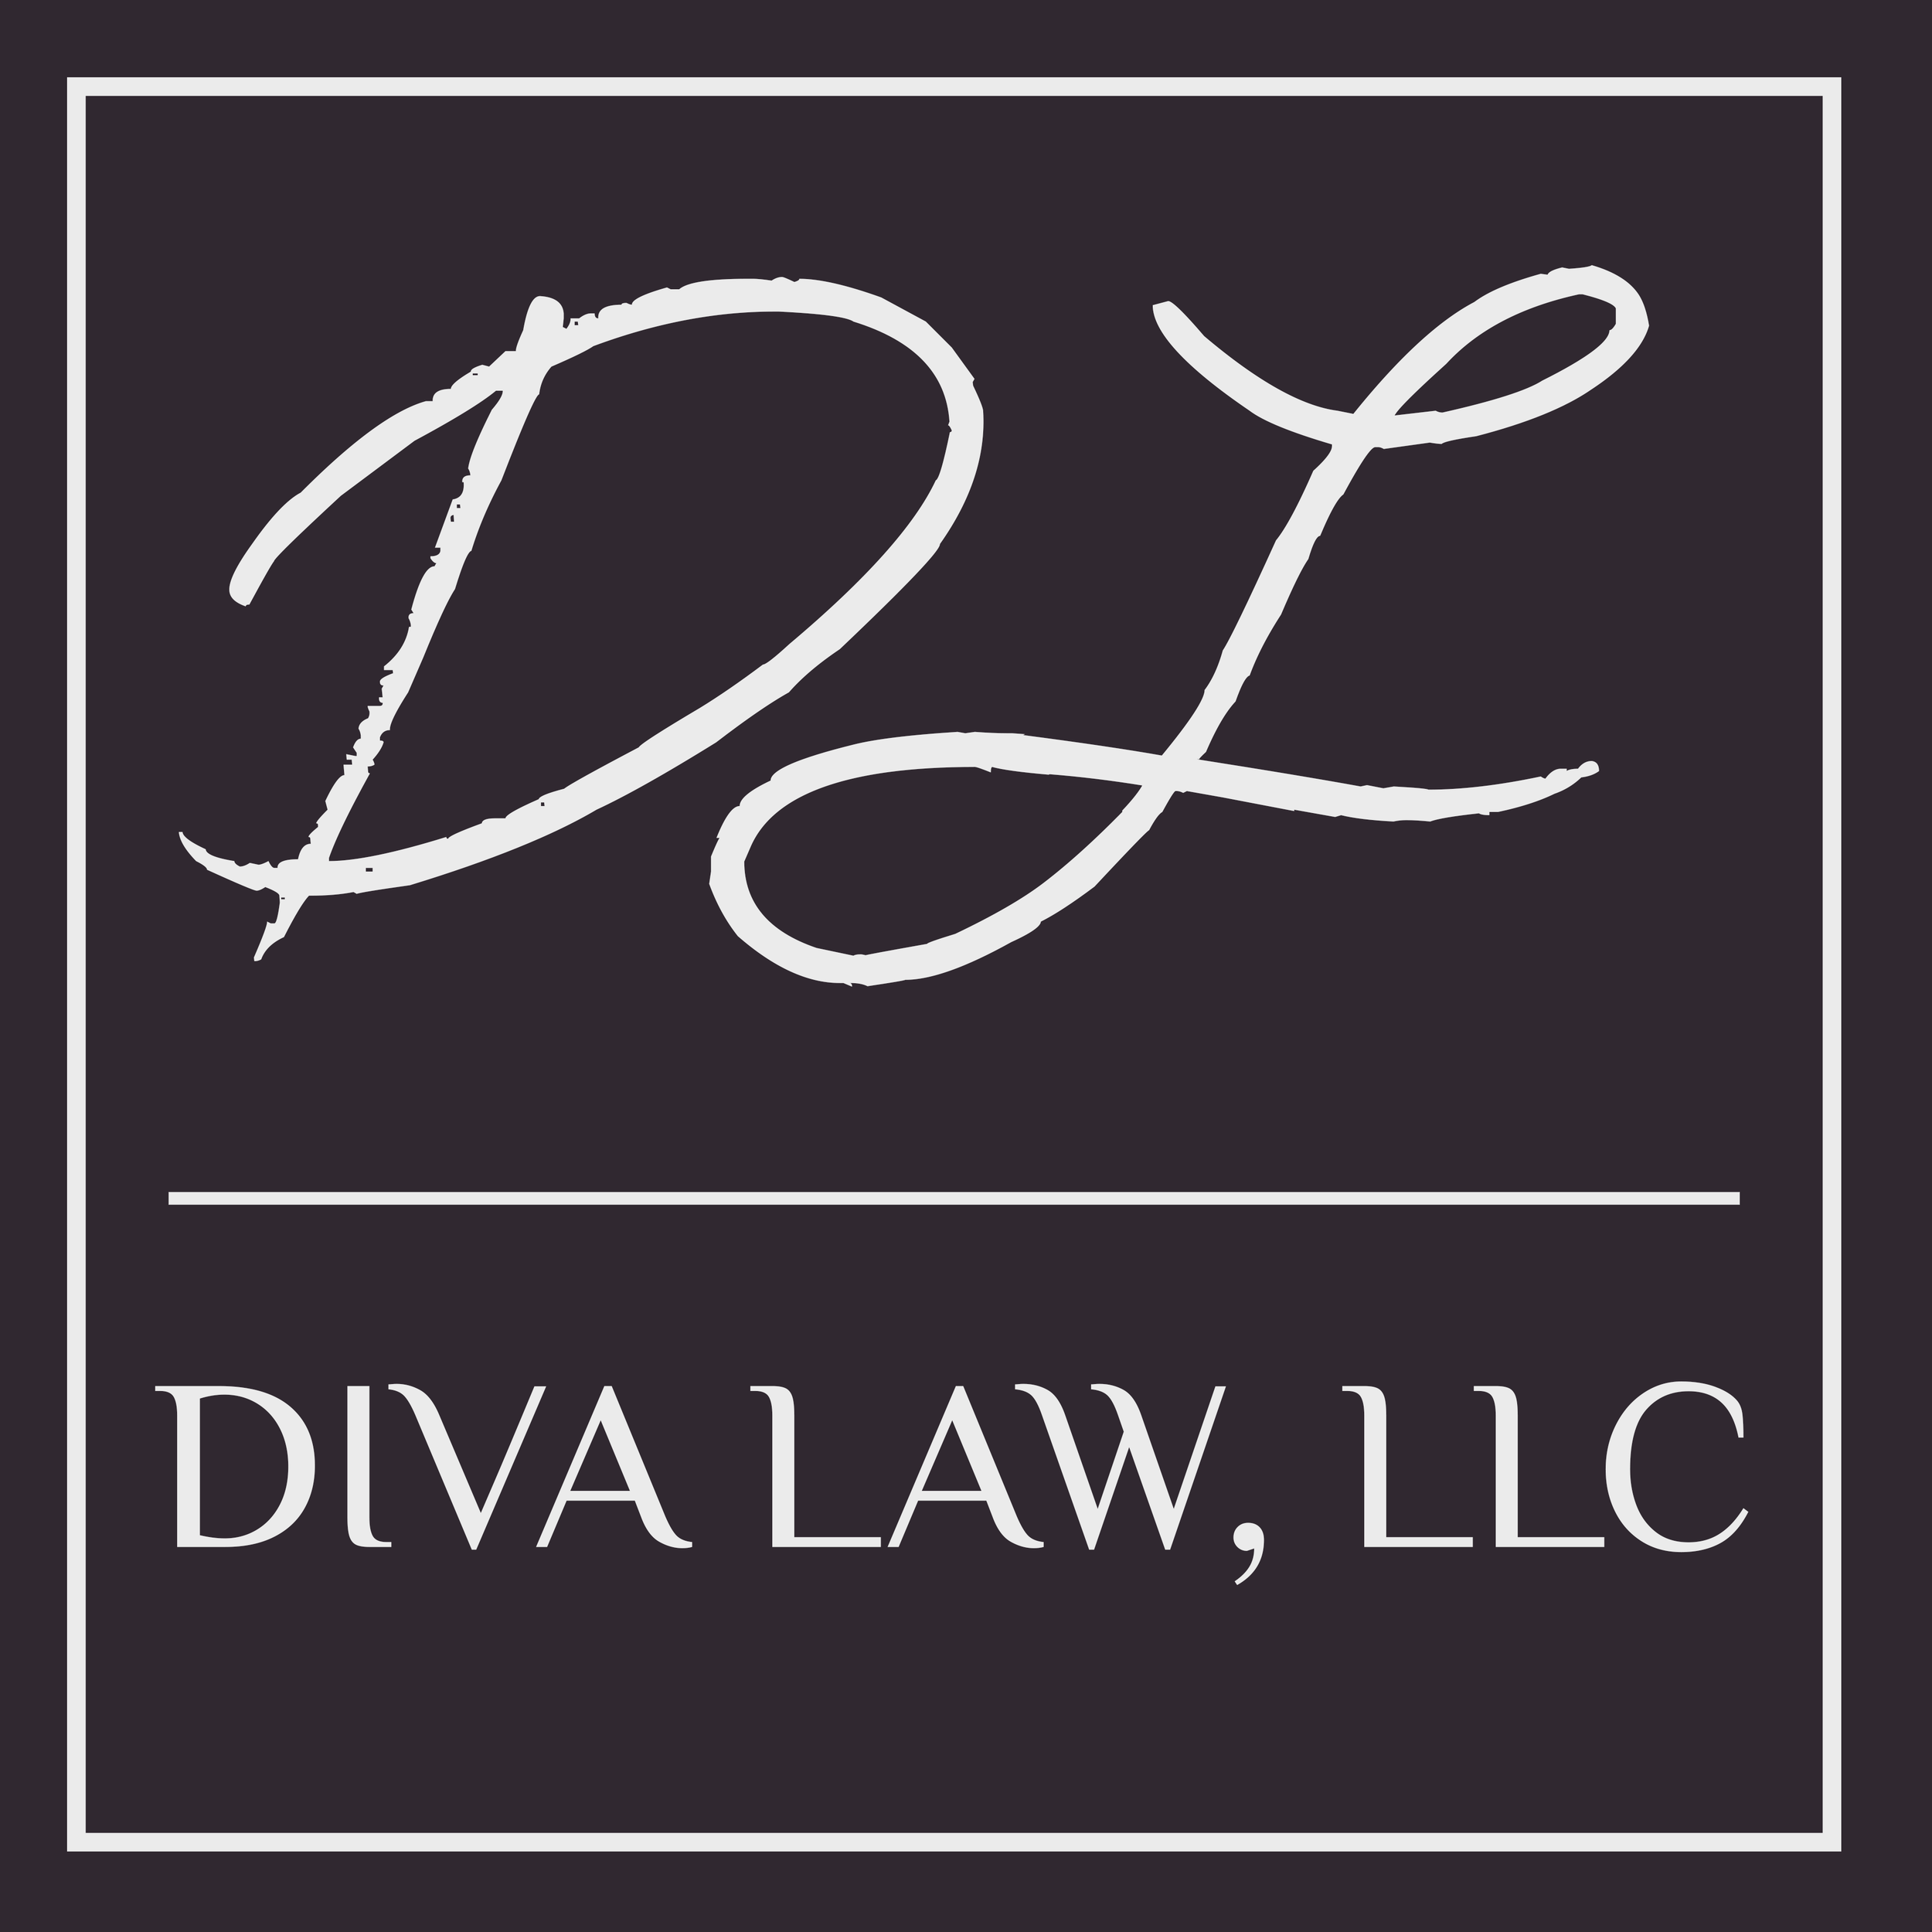 Diva Law, LLC. - logo, branding, website, letterhead, business cards